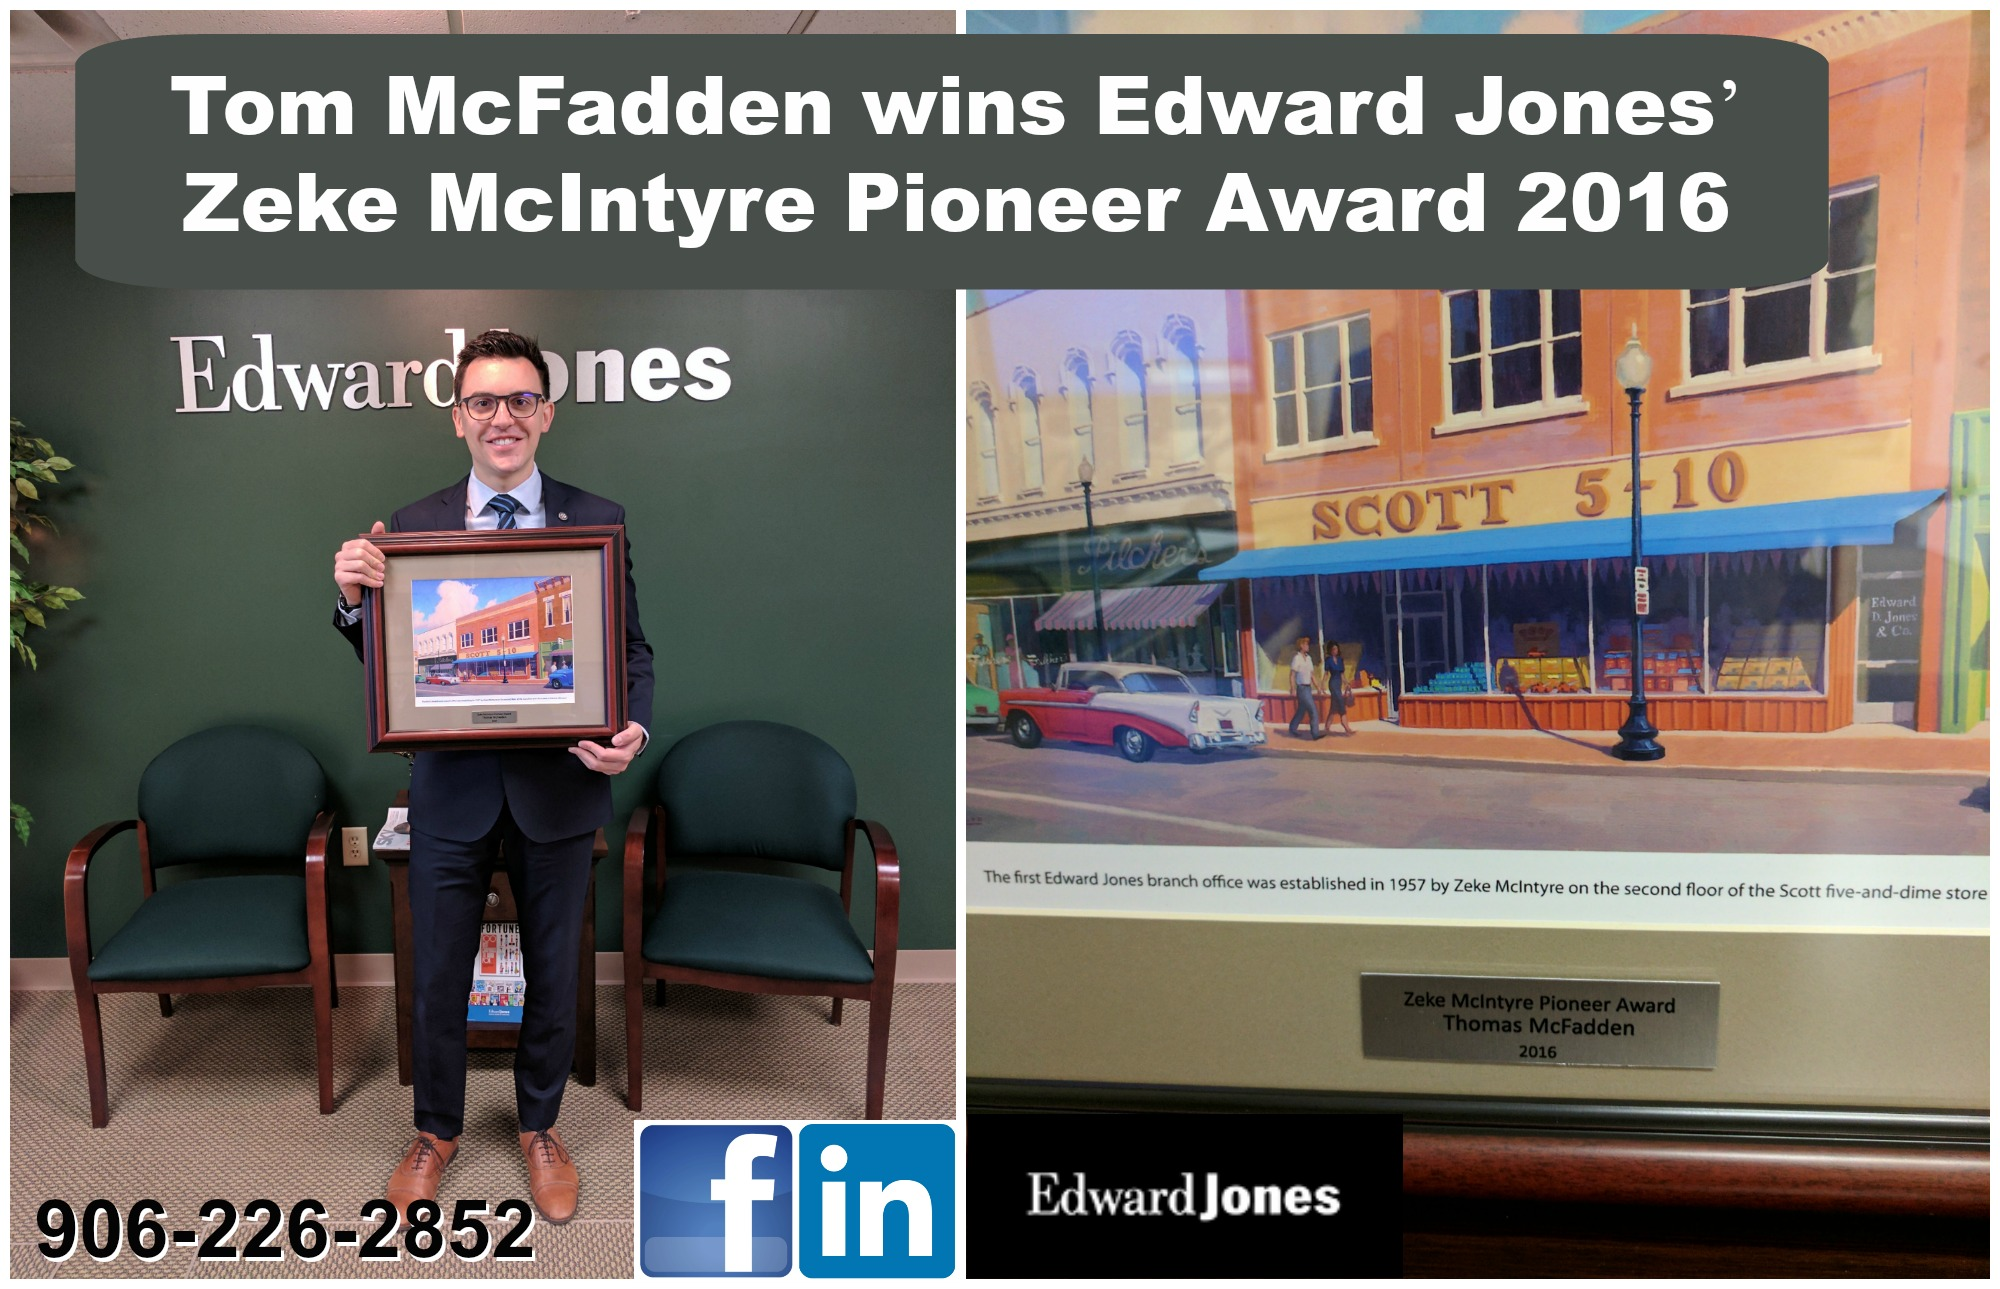 Tom McFadden wins Edward Jones' Zeke McIntyre Pioneer Award 2016